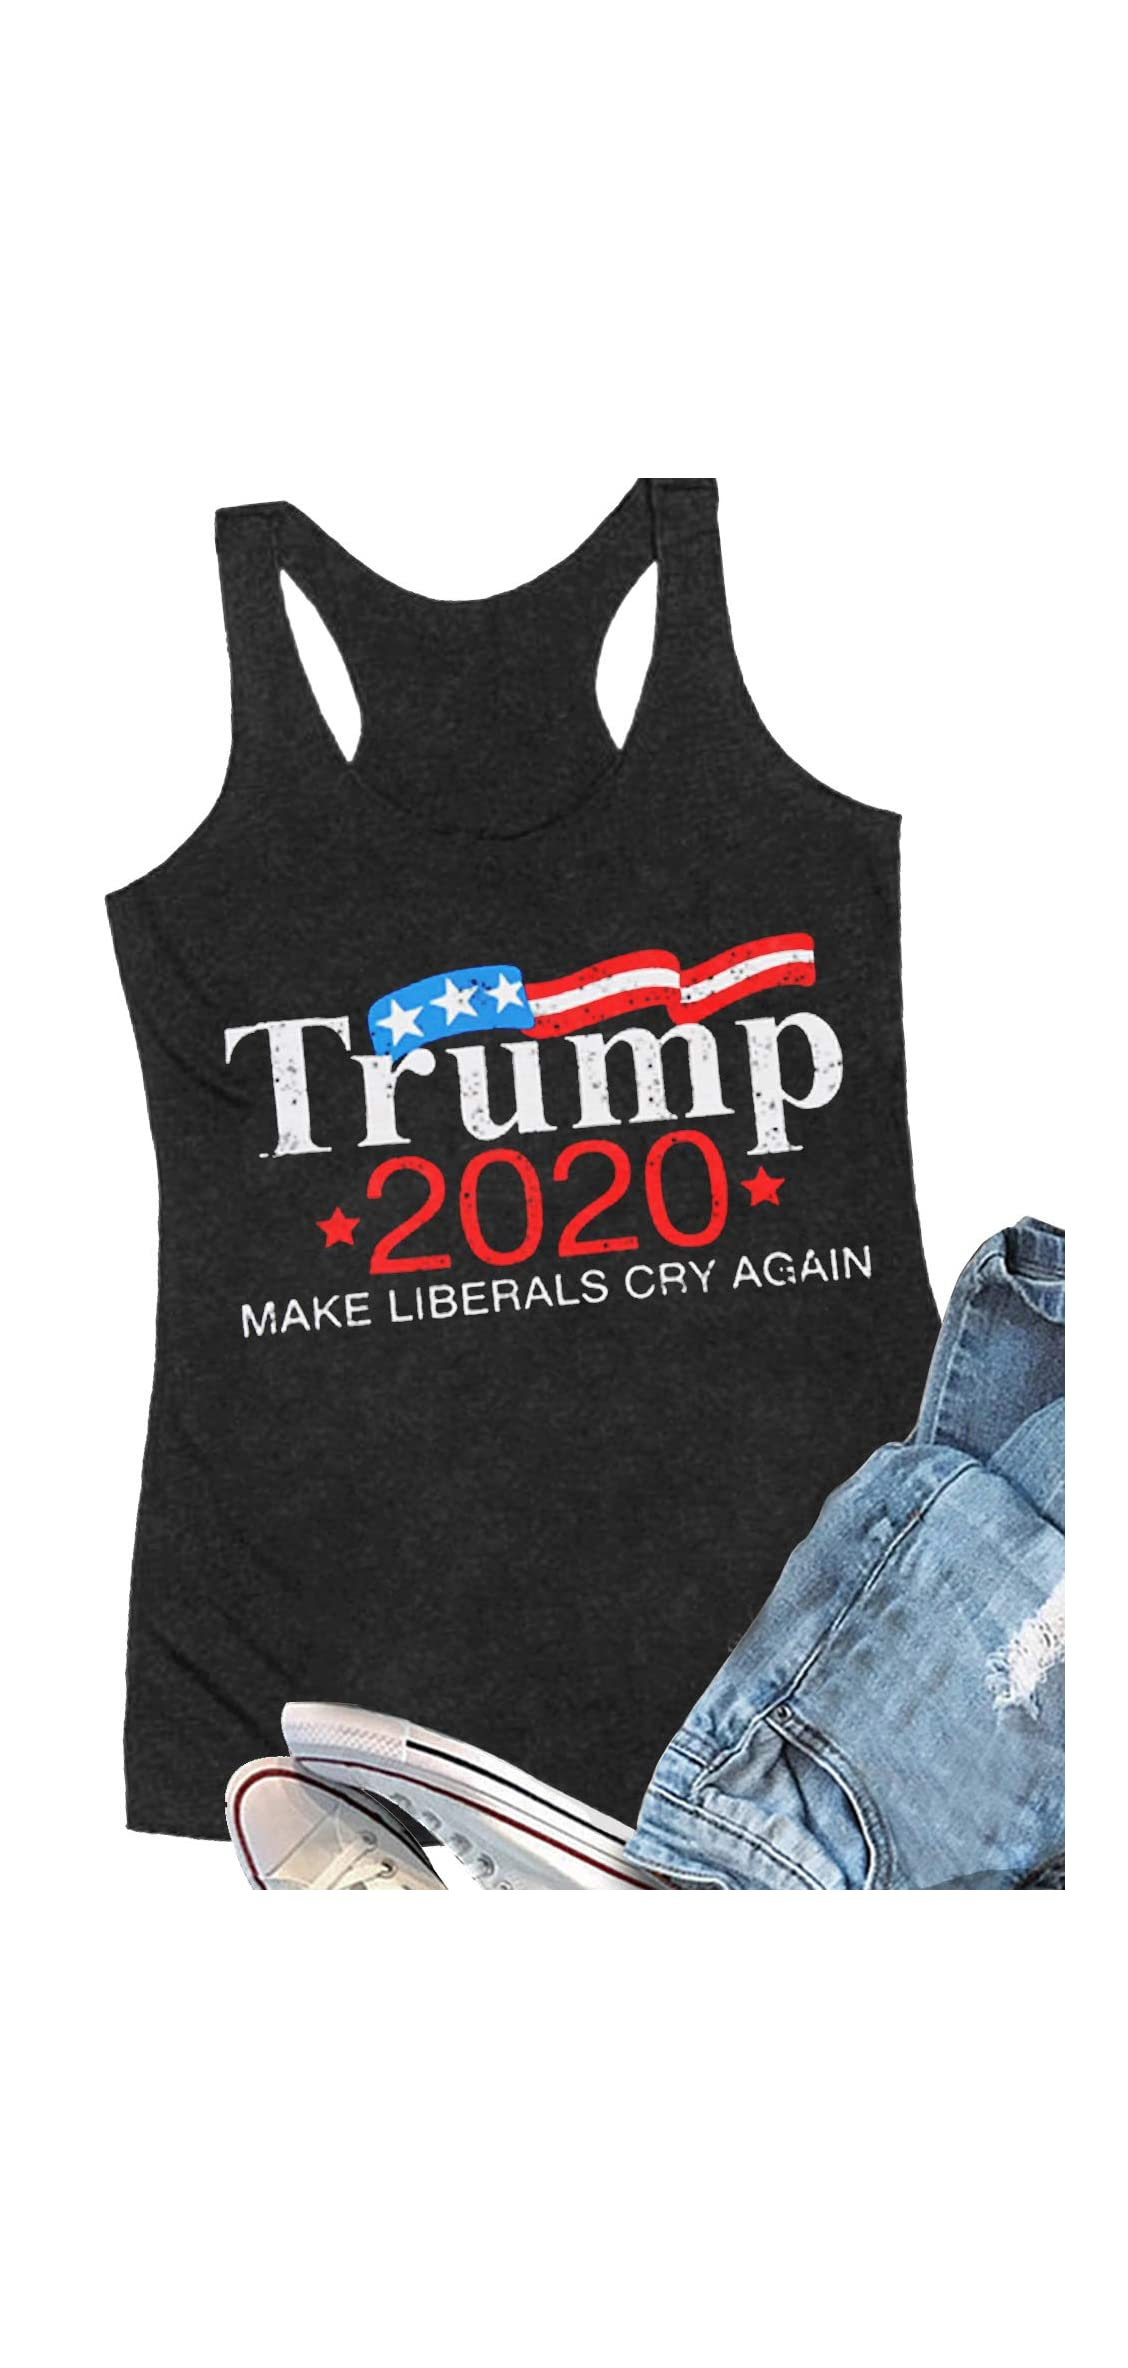 Th Of July Trump Shirt For Women Vintage American Flag Print T